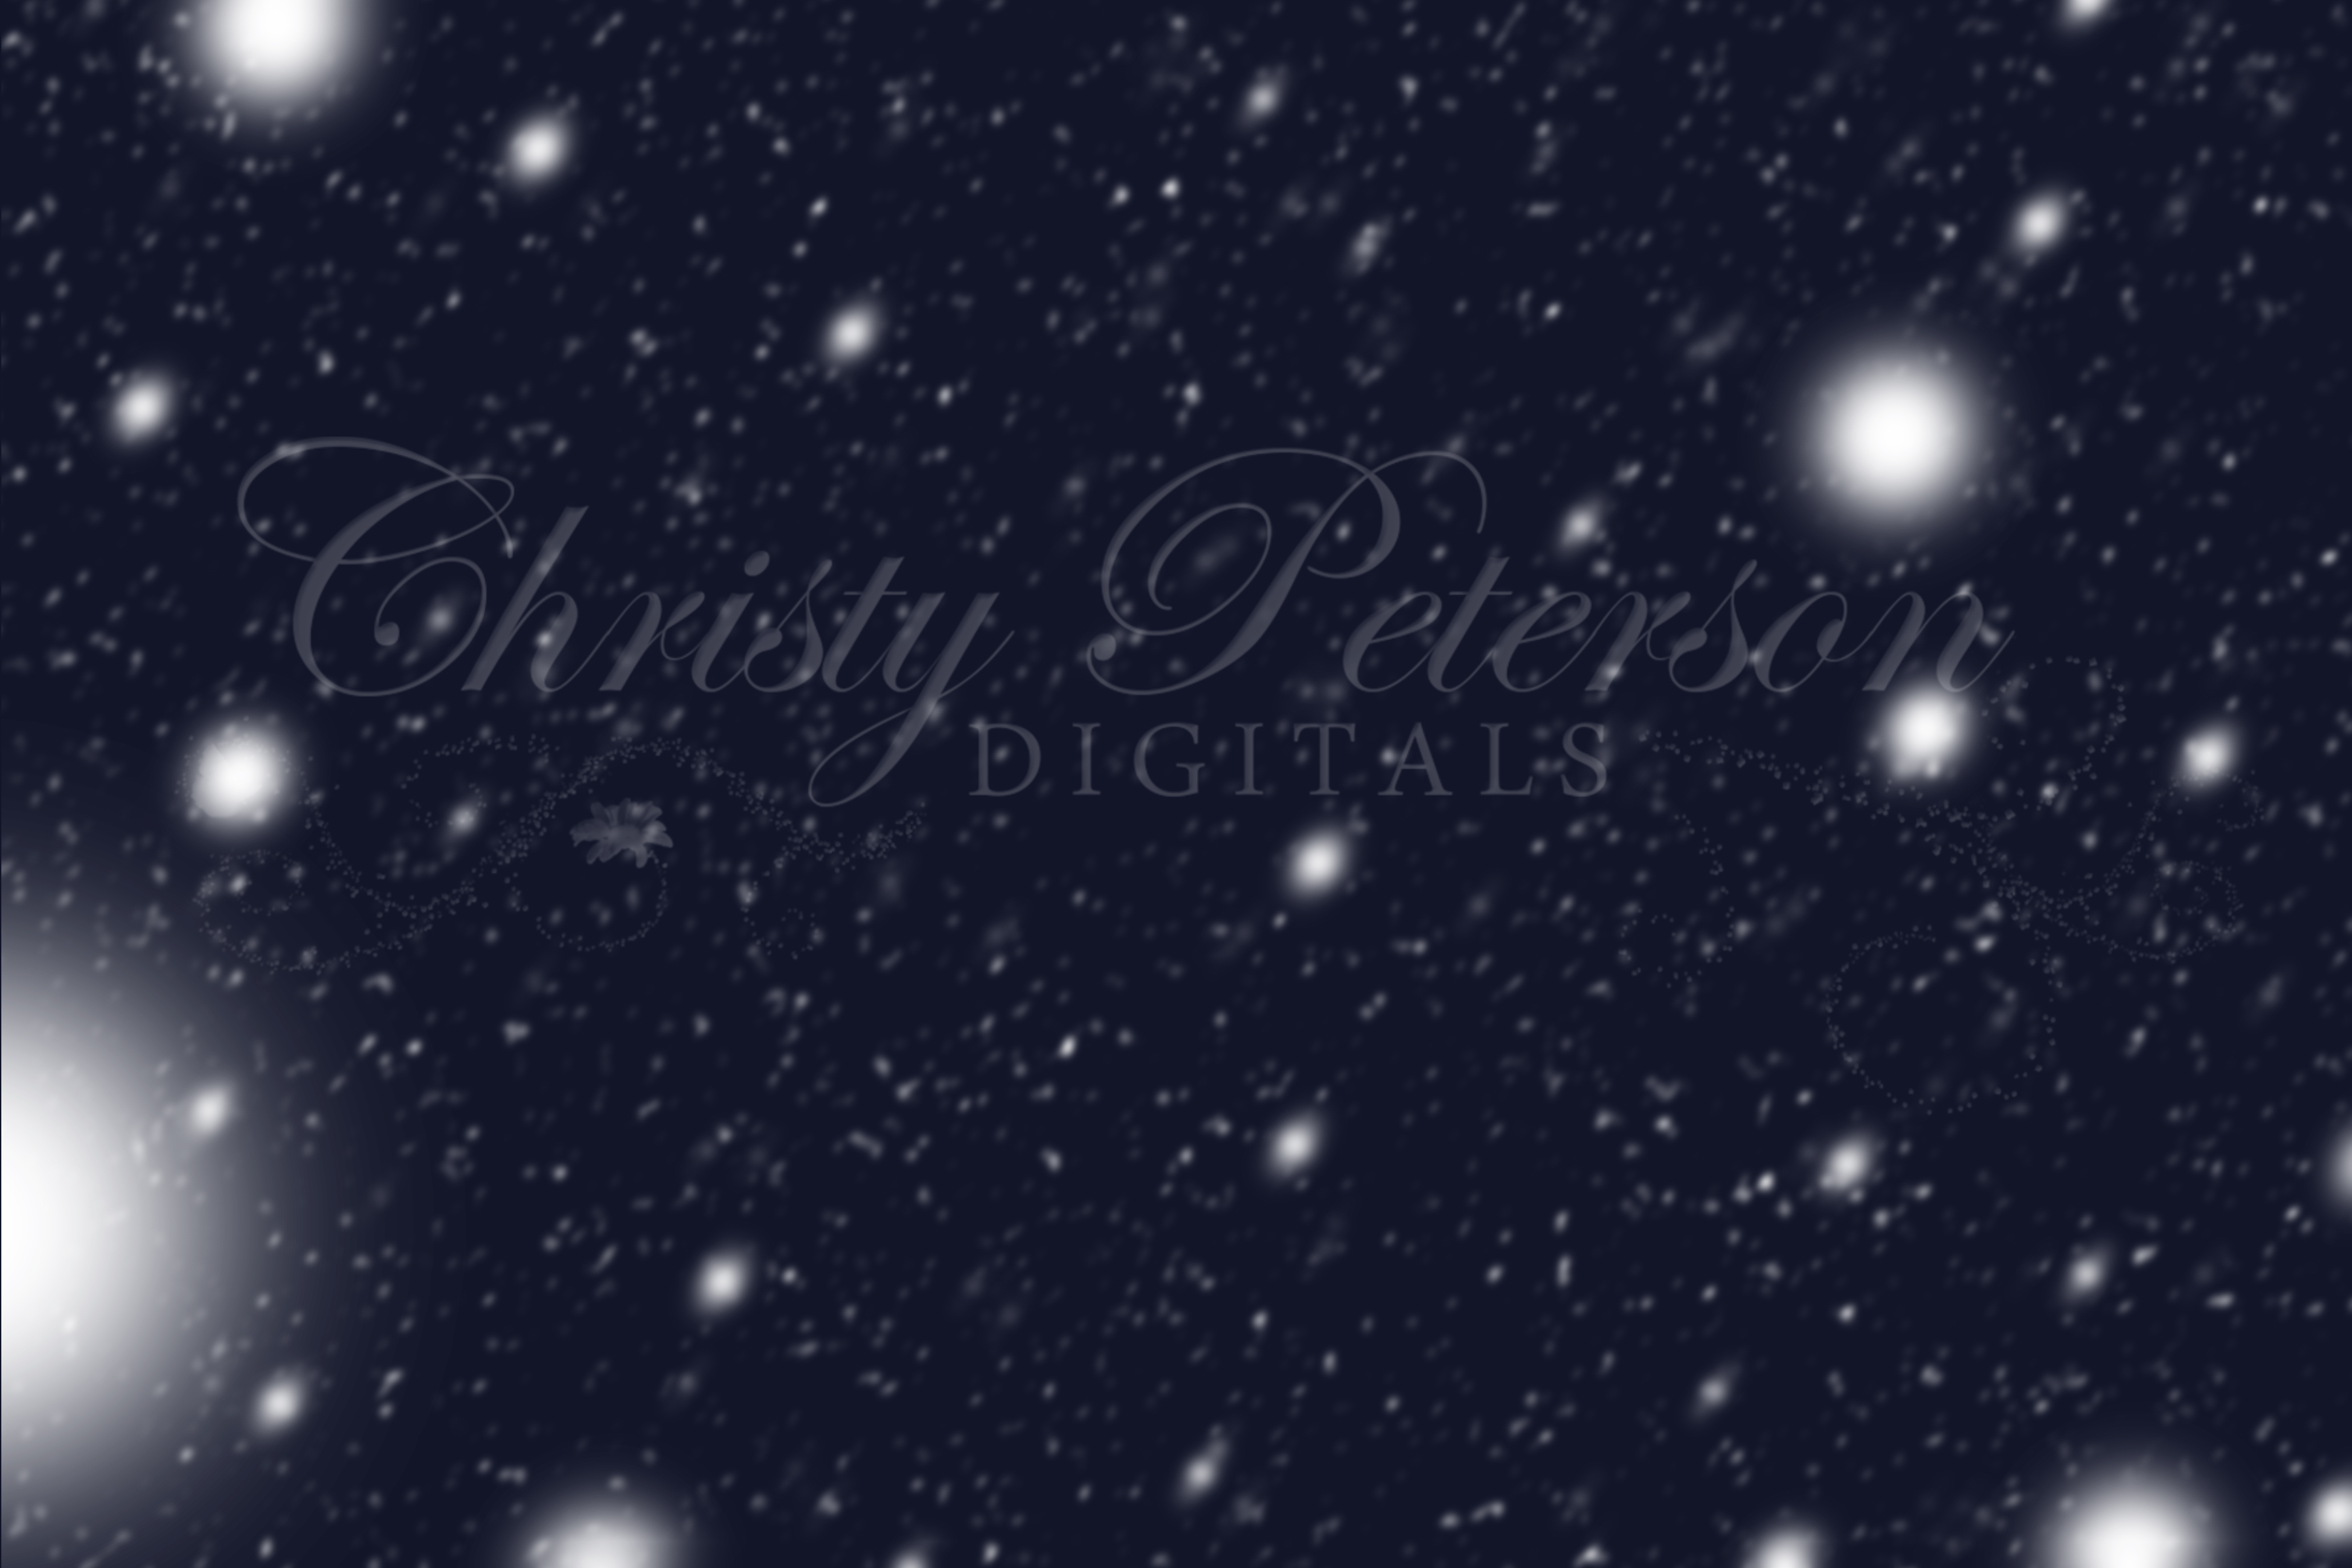 6 snow and frost digital png overlays christy peterson